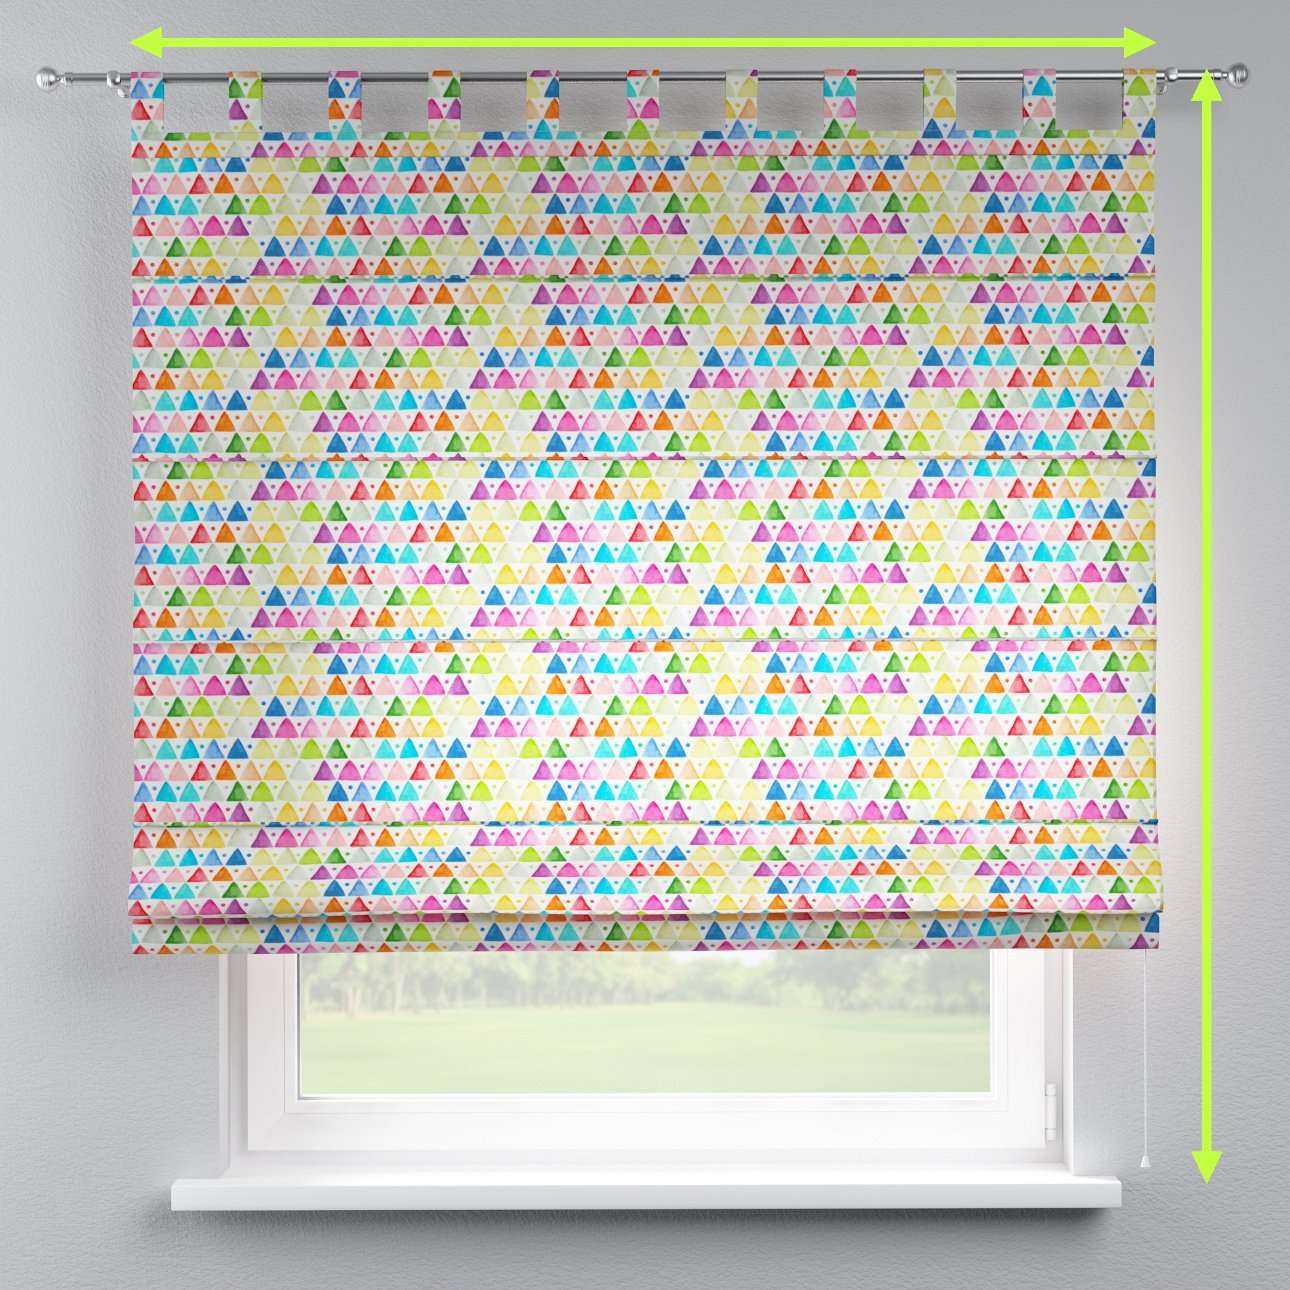 Verona tab top roman blind in collection New Art, fabric: 140-27